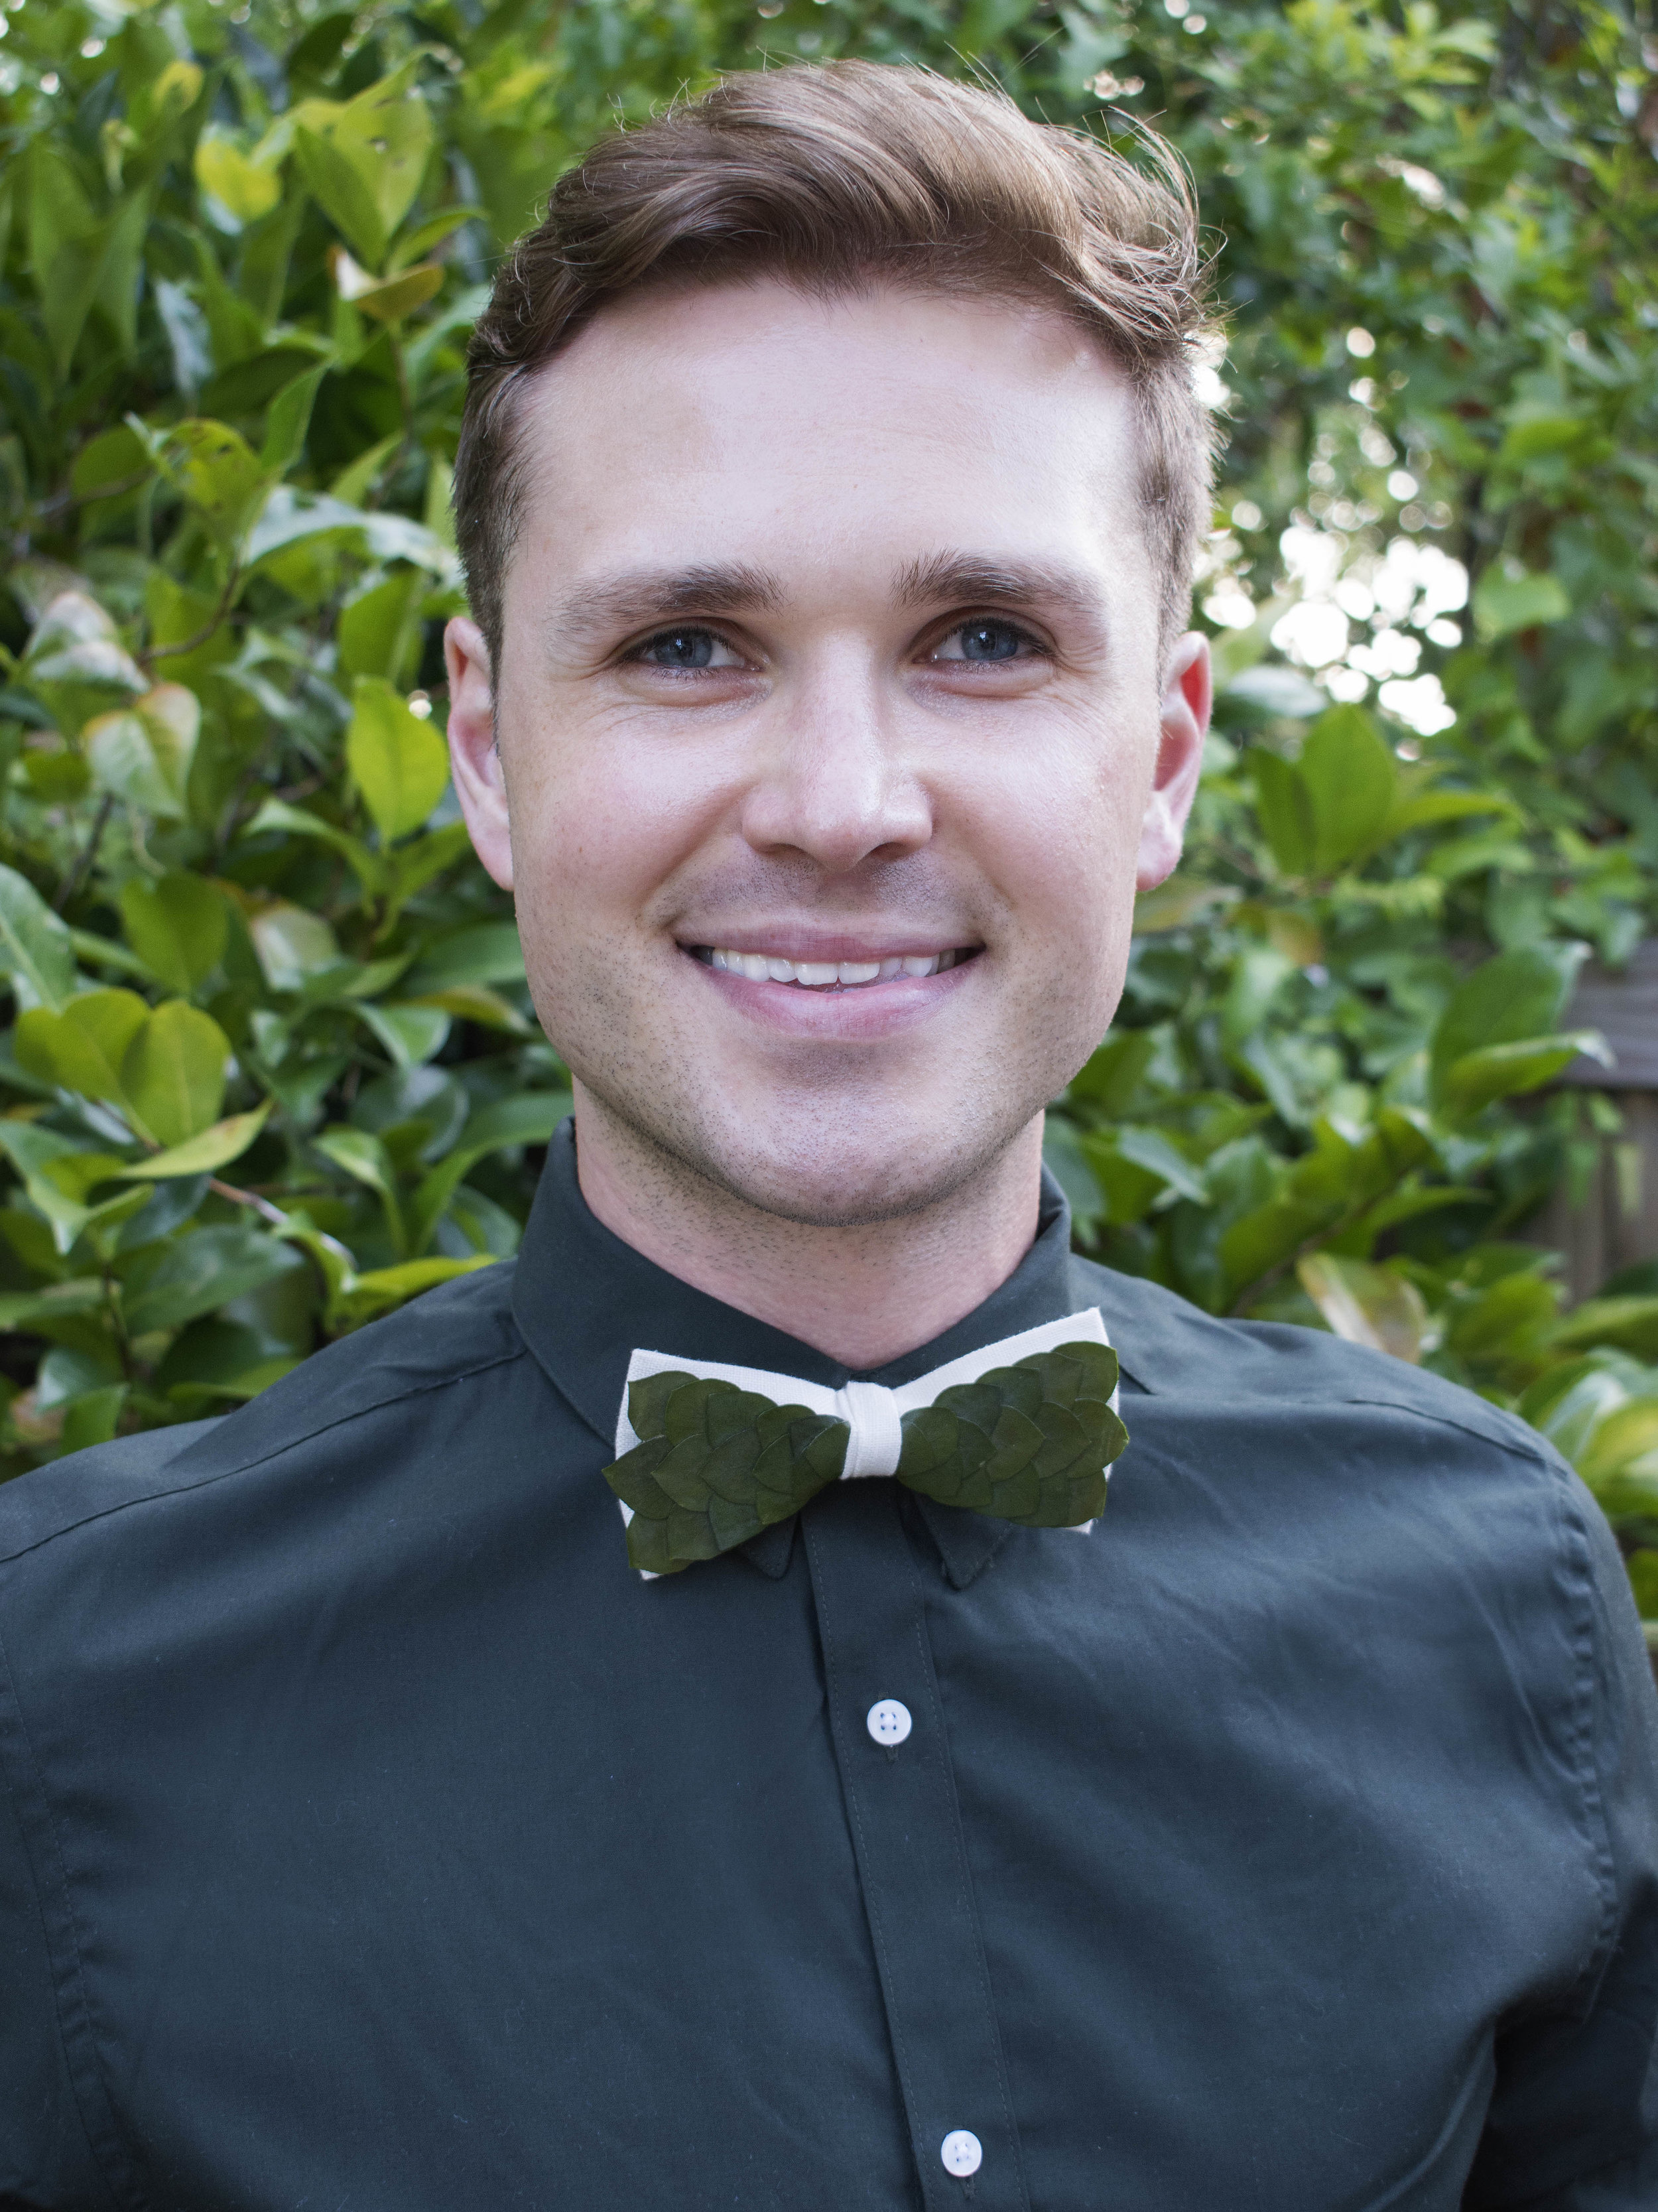 Botany Bow TiesSuper cool concept of integrating plants into a beautiful linen bow tie.Crafted by hand,Botany Bow Ties uses organic materials only. -